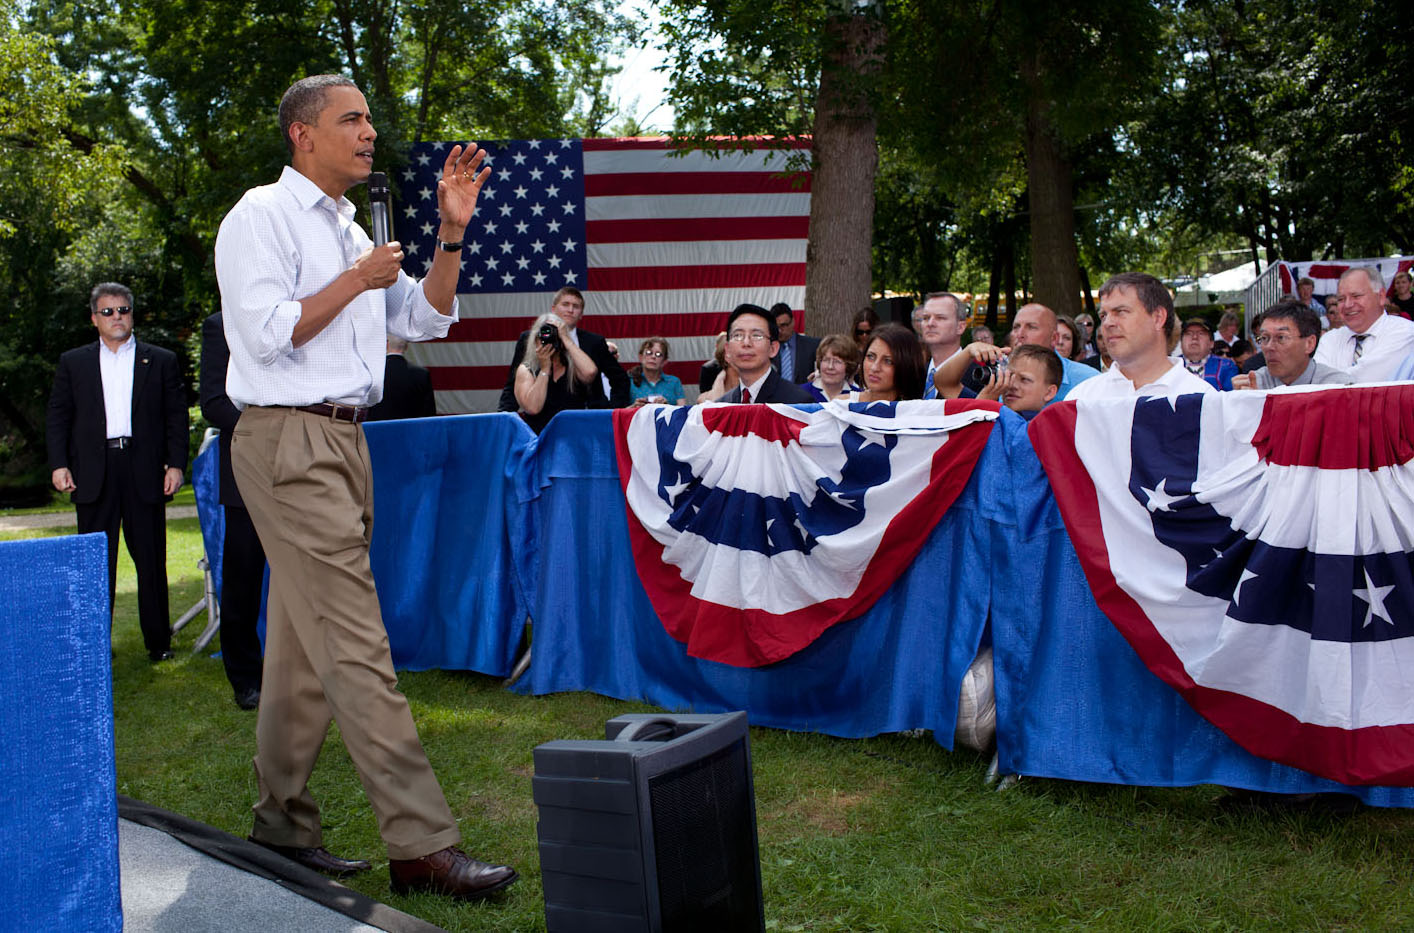 President Obama at Town Hall in Cannon Falls MN